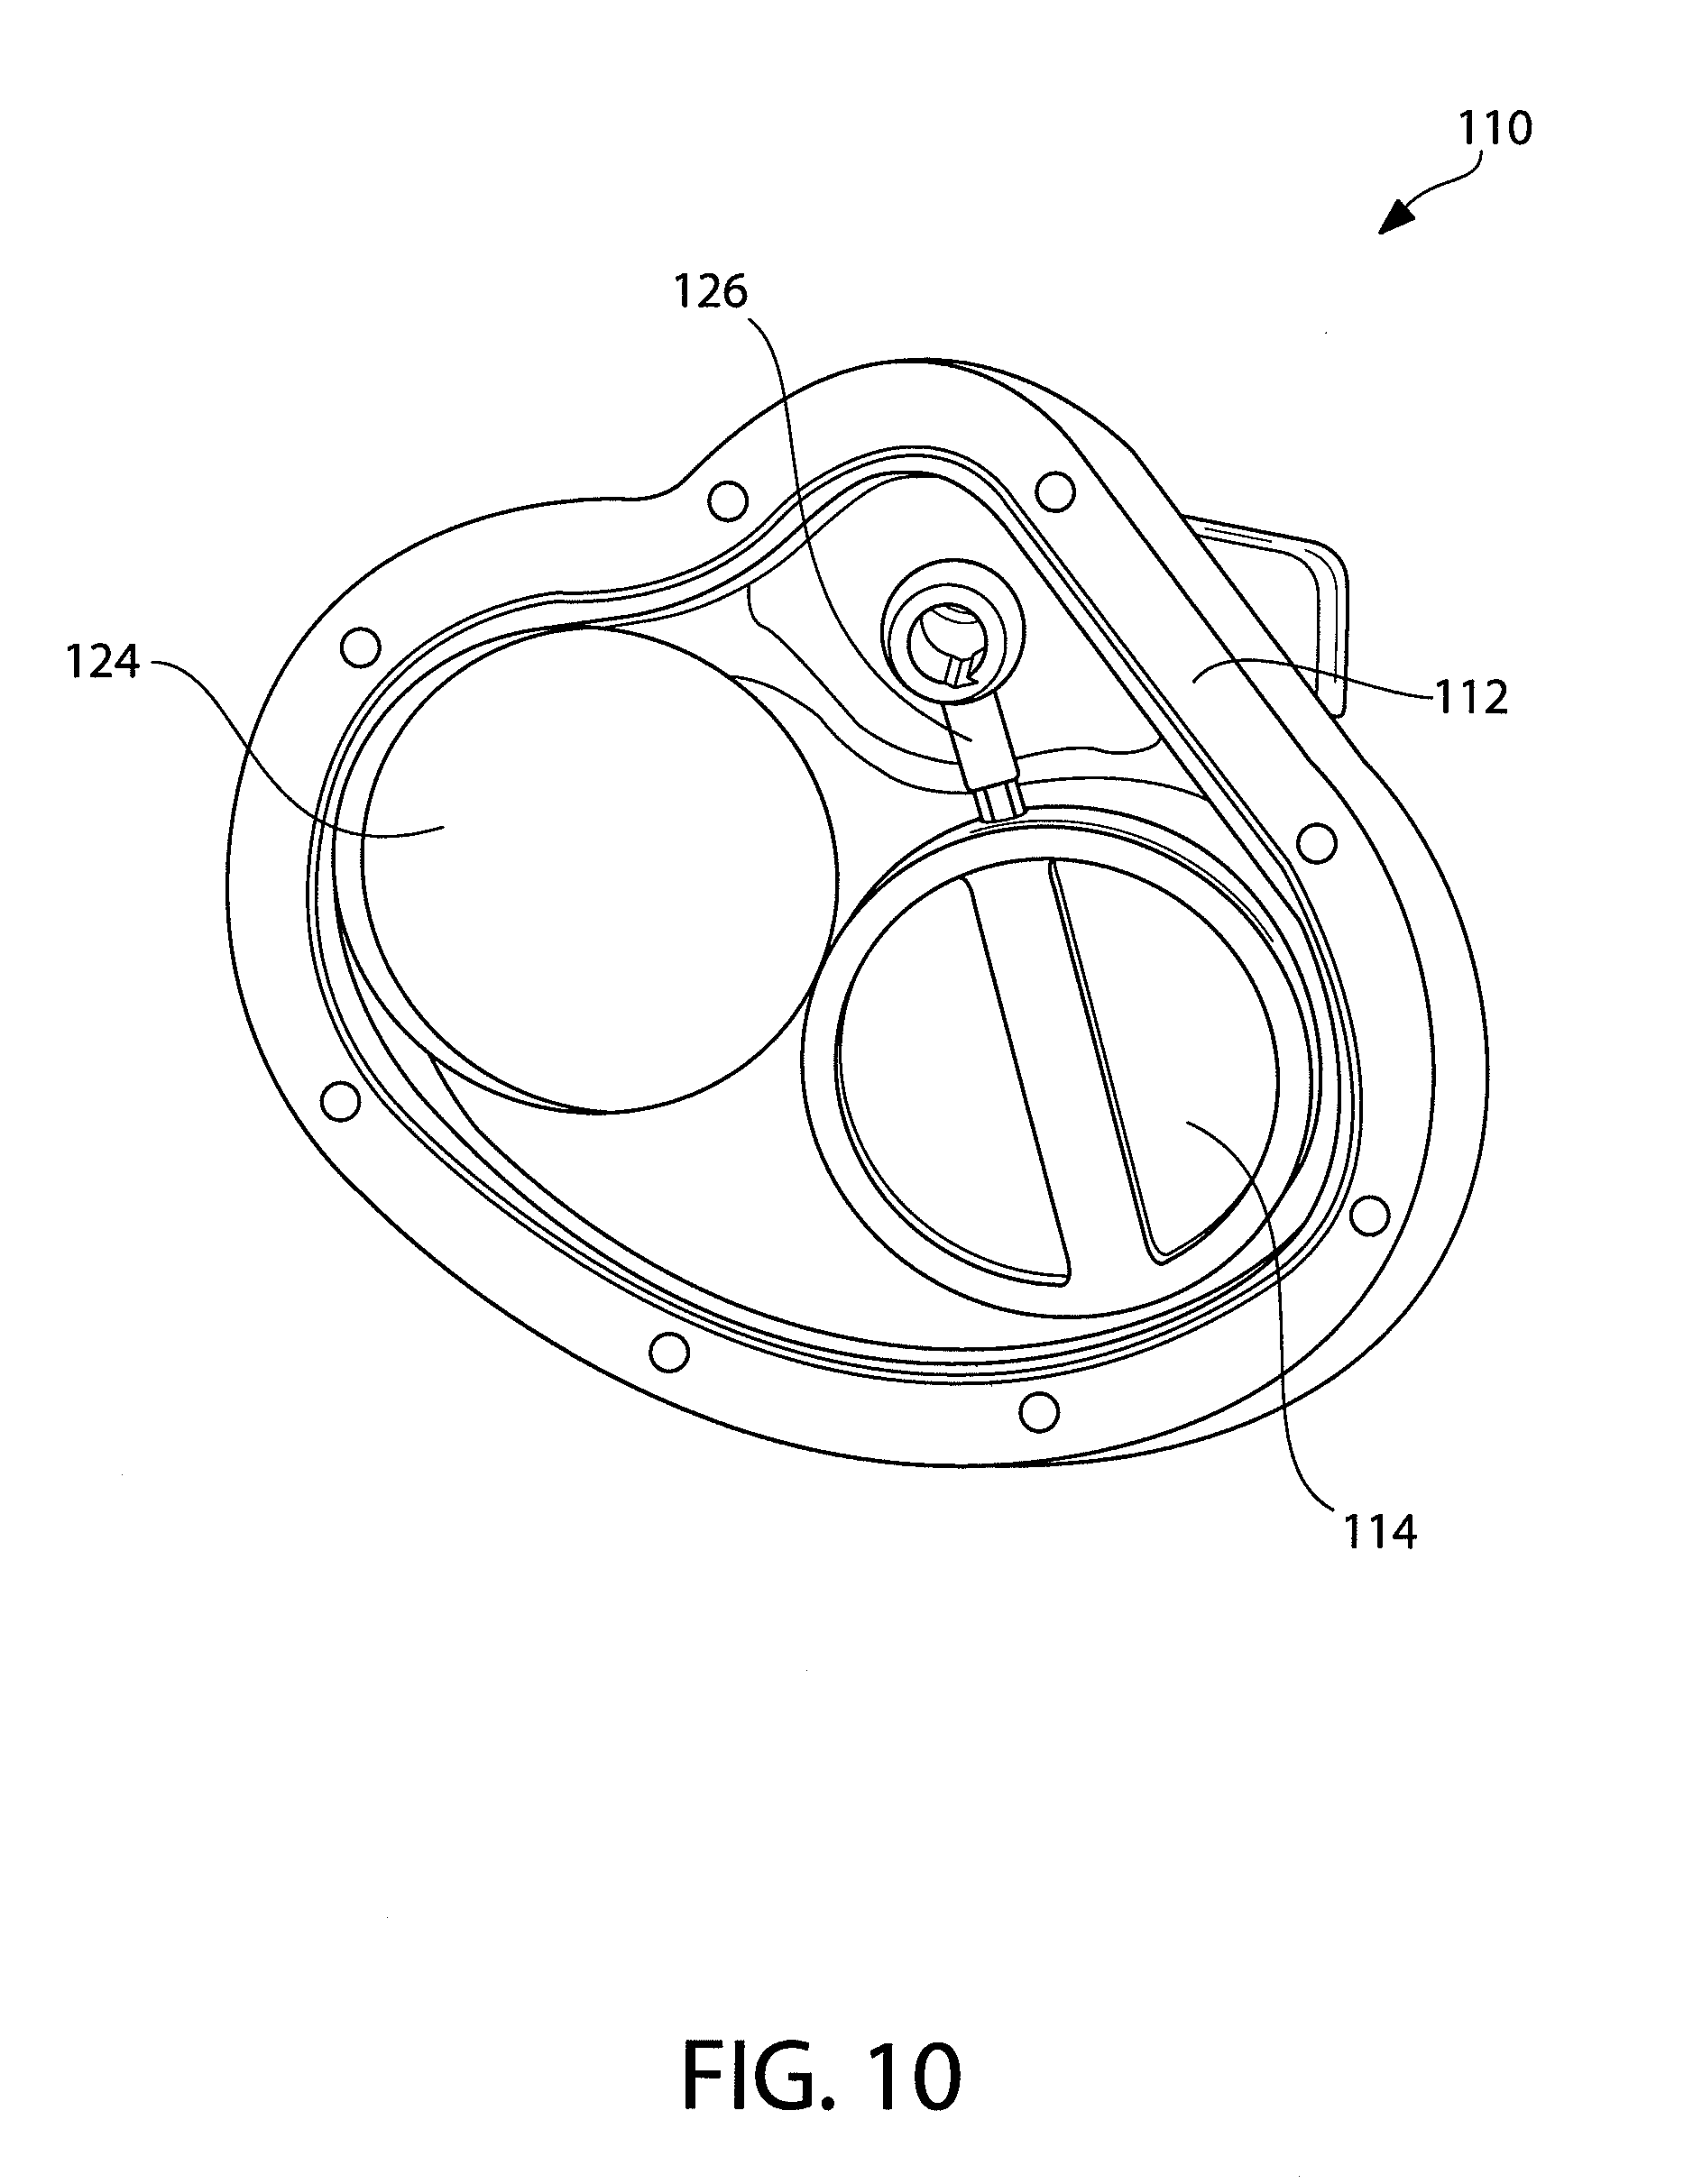 US20130068972A1 20130321 D00010 patent us20130068972 air shutoff swing gate valve google patents roda deaco valve wiring diagram at bayanpartner.co